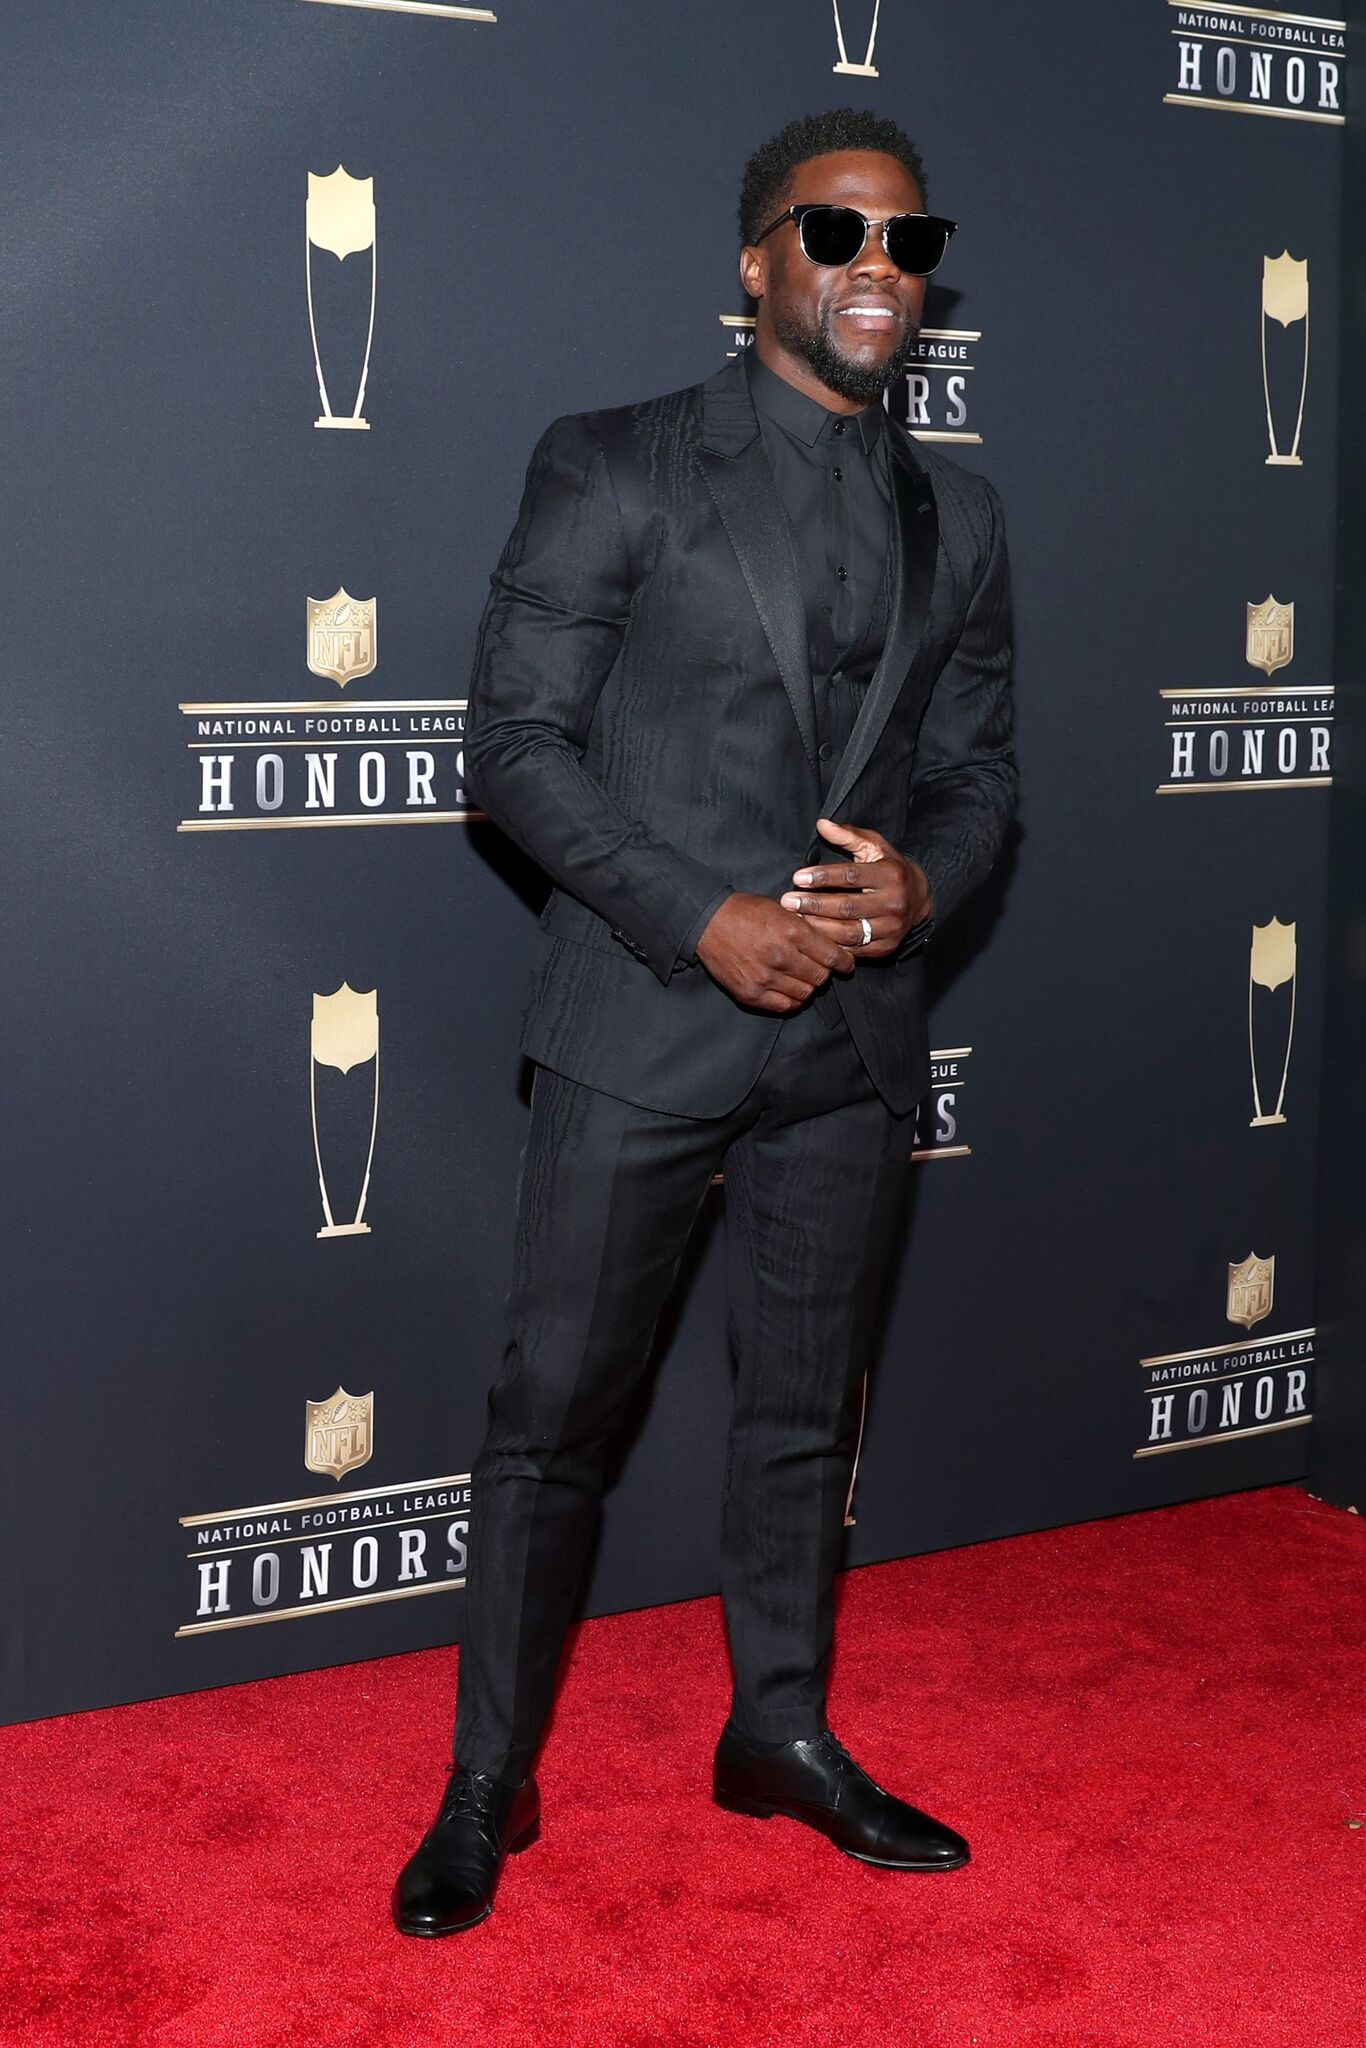 Comedian Kevin Hart attends the NFL Honors at University of Minnesota on February 3, 2018 in Minneapolis, Minnesota. l  Getty Images